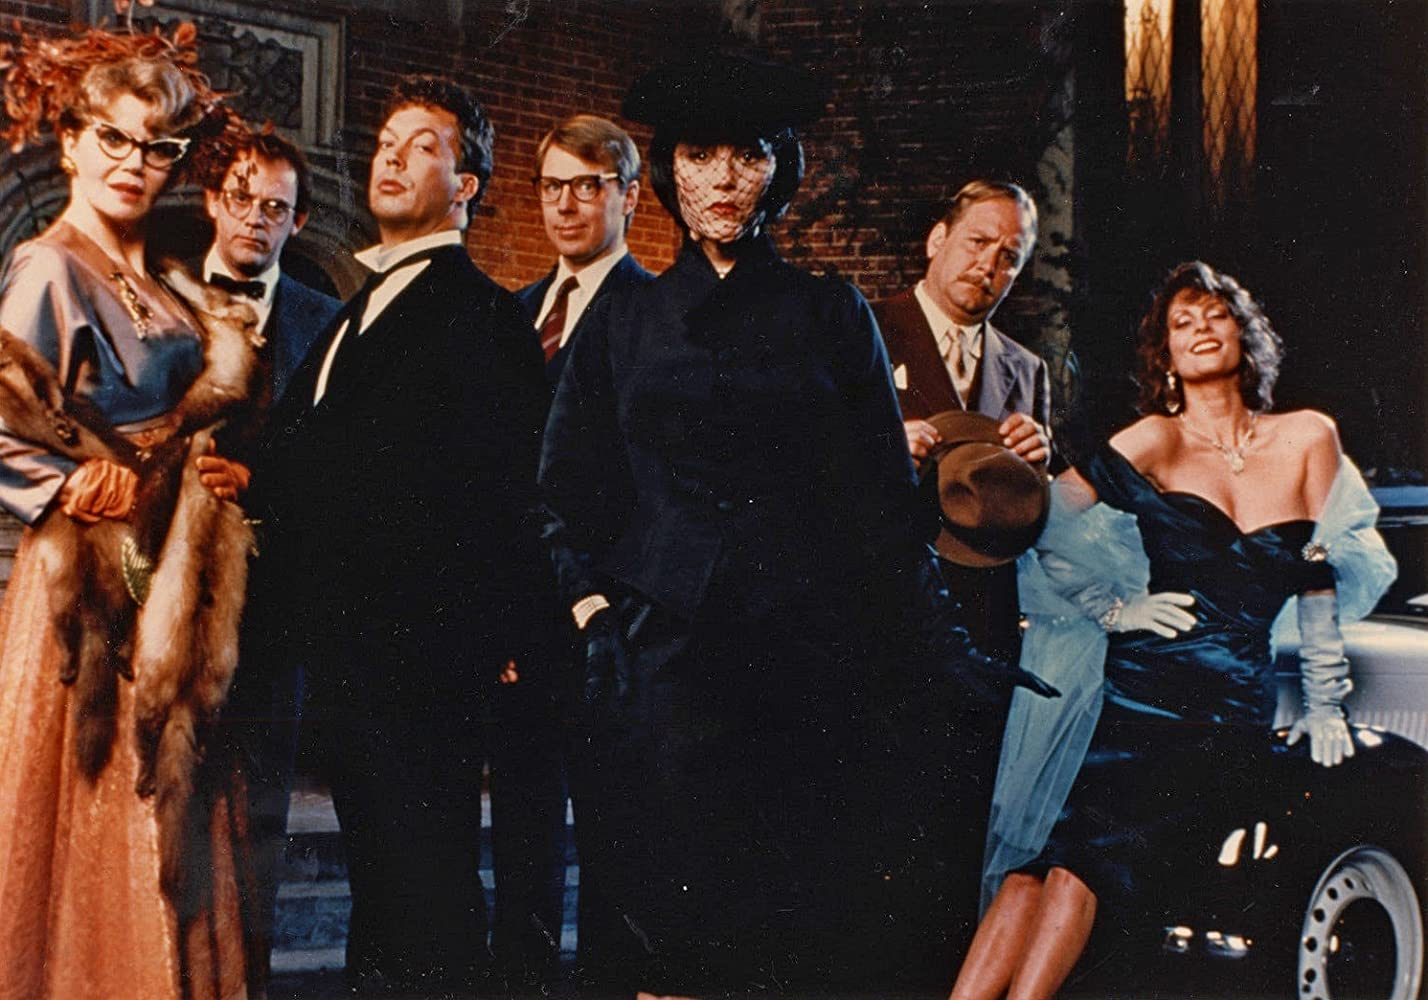 Tim Curry, Christopher Lloyd, Lesley Ann Warren, Madeline Kahn, Eileen Brennan, Michael McKean, and Martin Mull in Clue (1985)